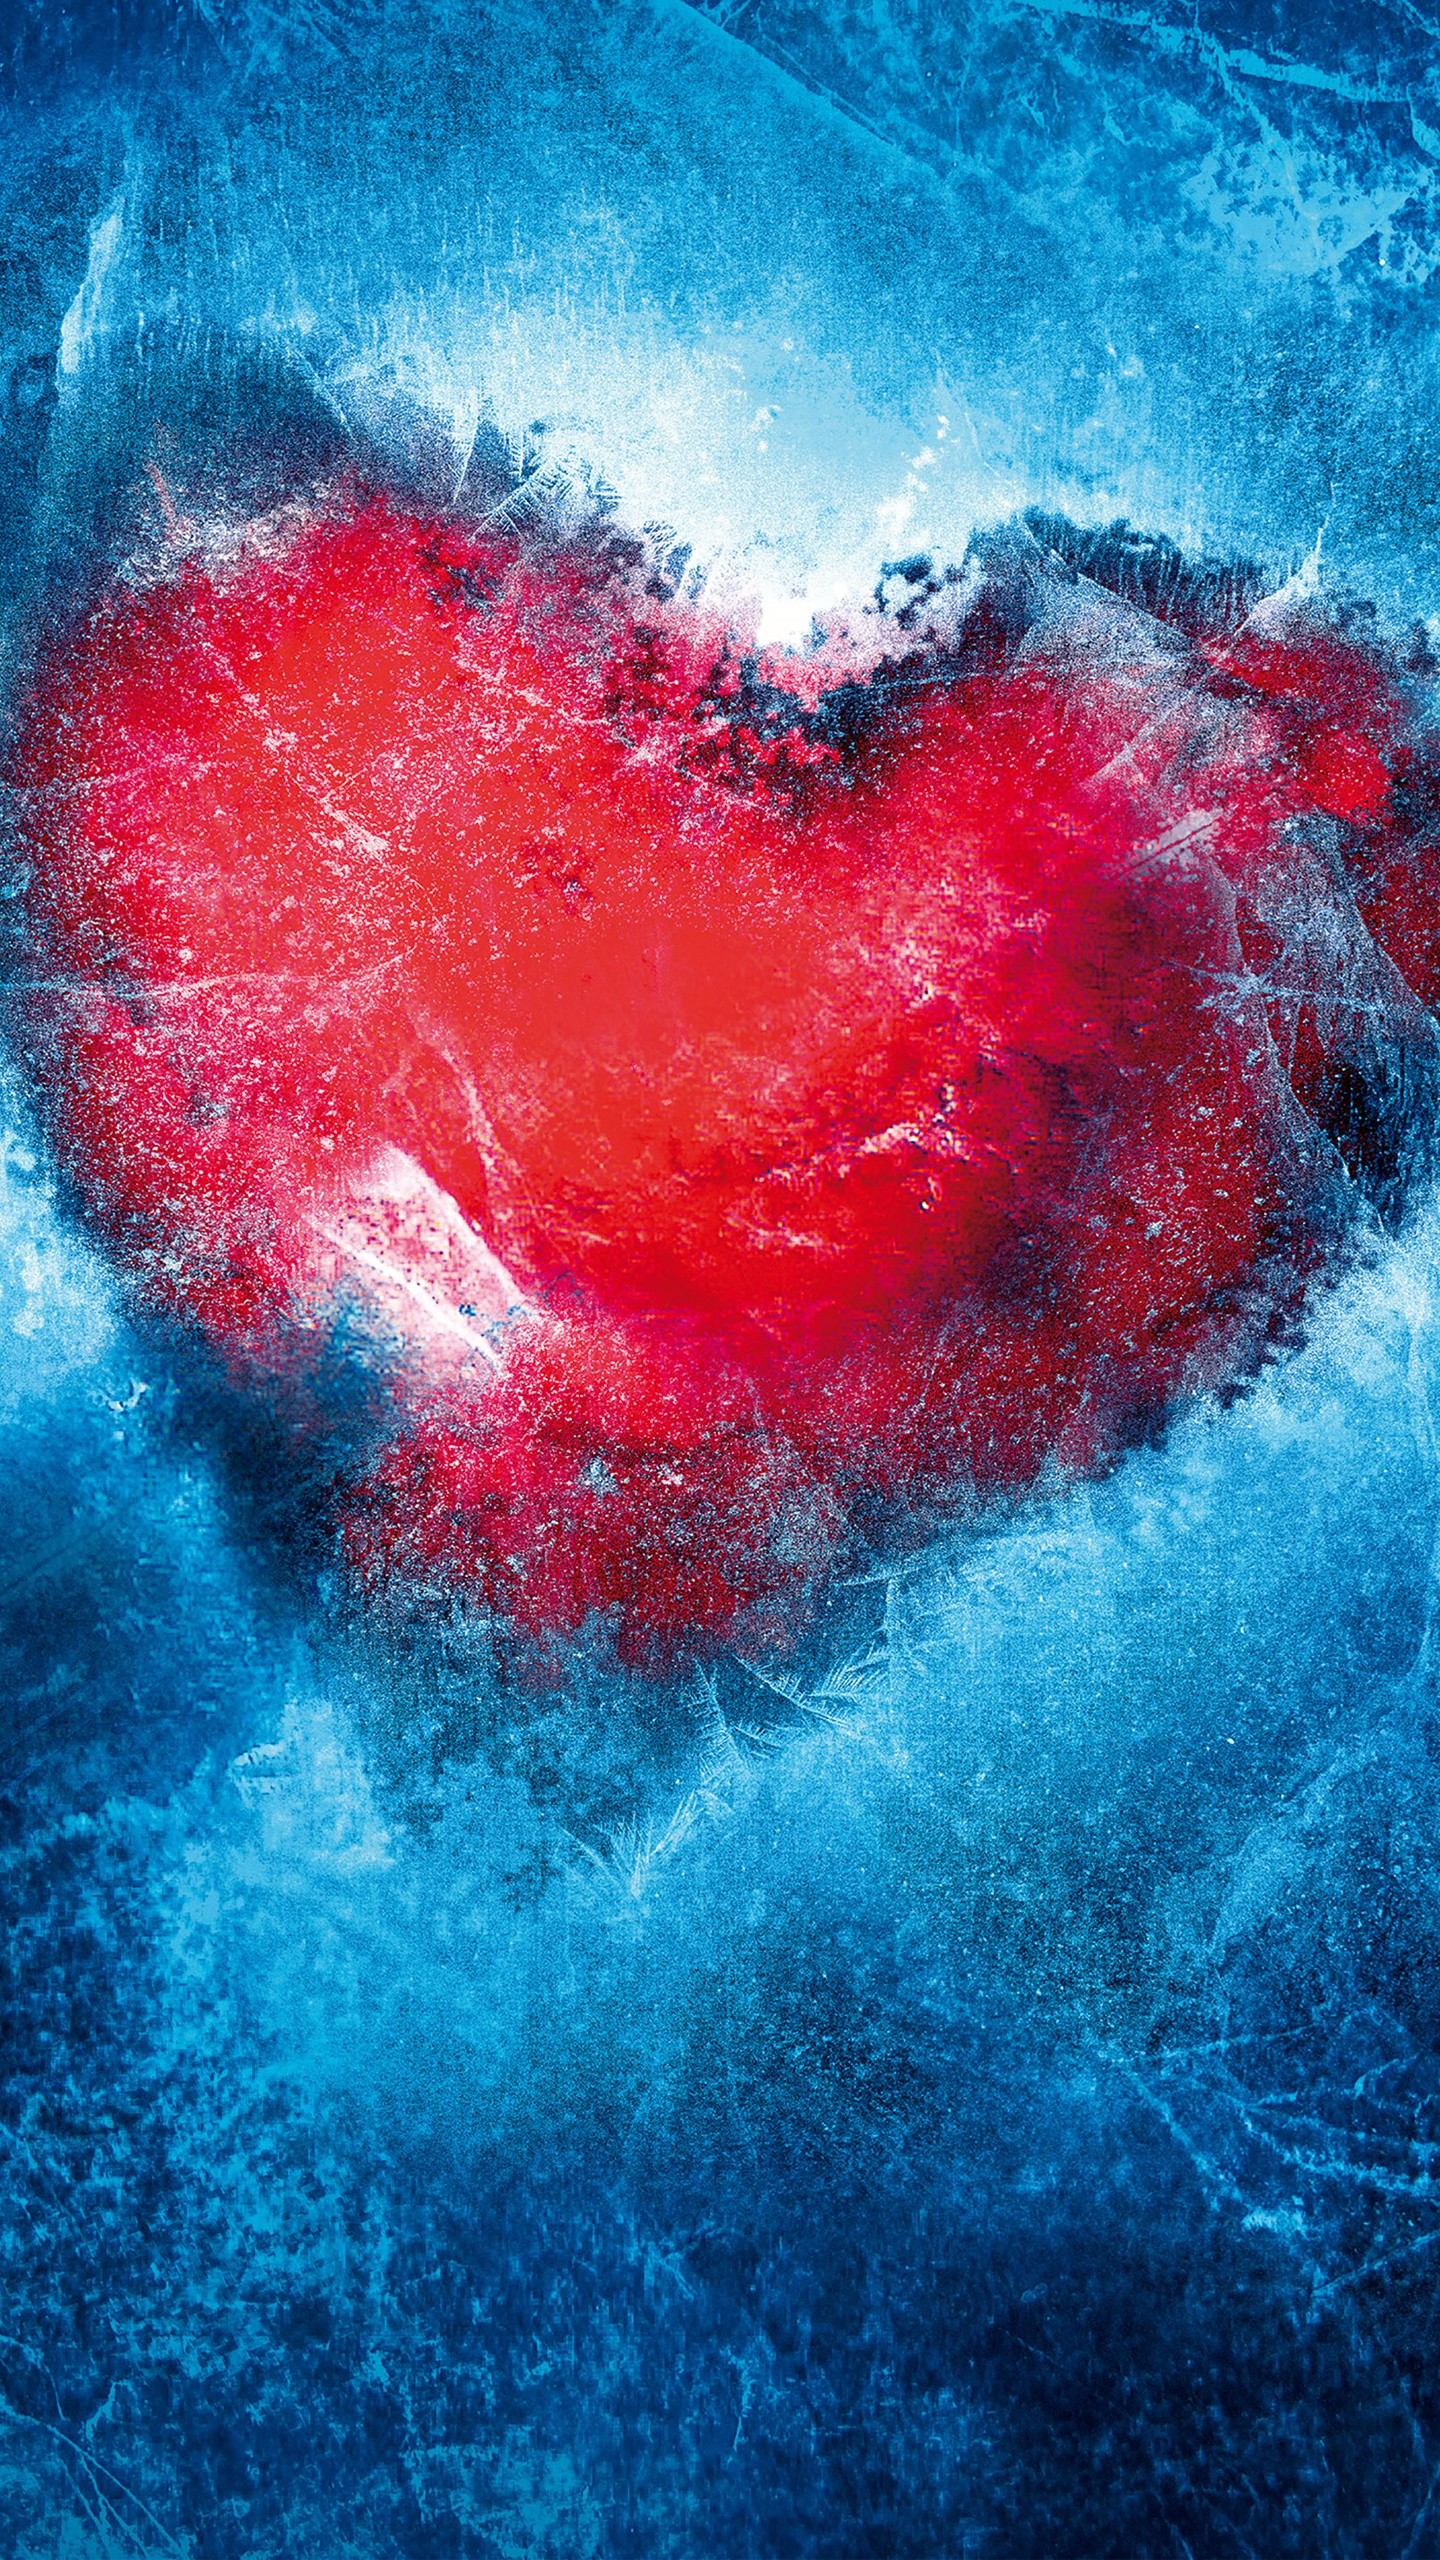 Most Popular Wallpaper For Iphone 6 Frozen Love Heart Wallpapers Hd Wallpapers Id 22748